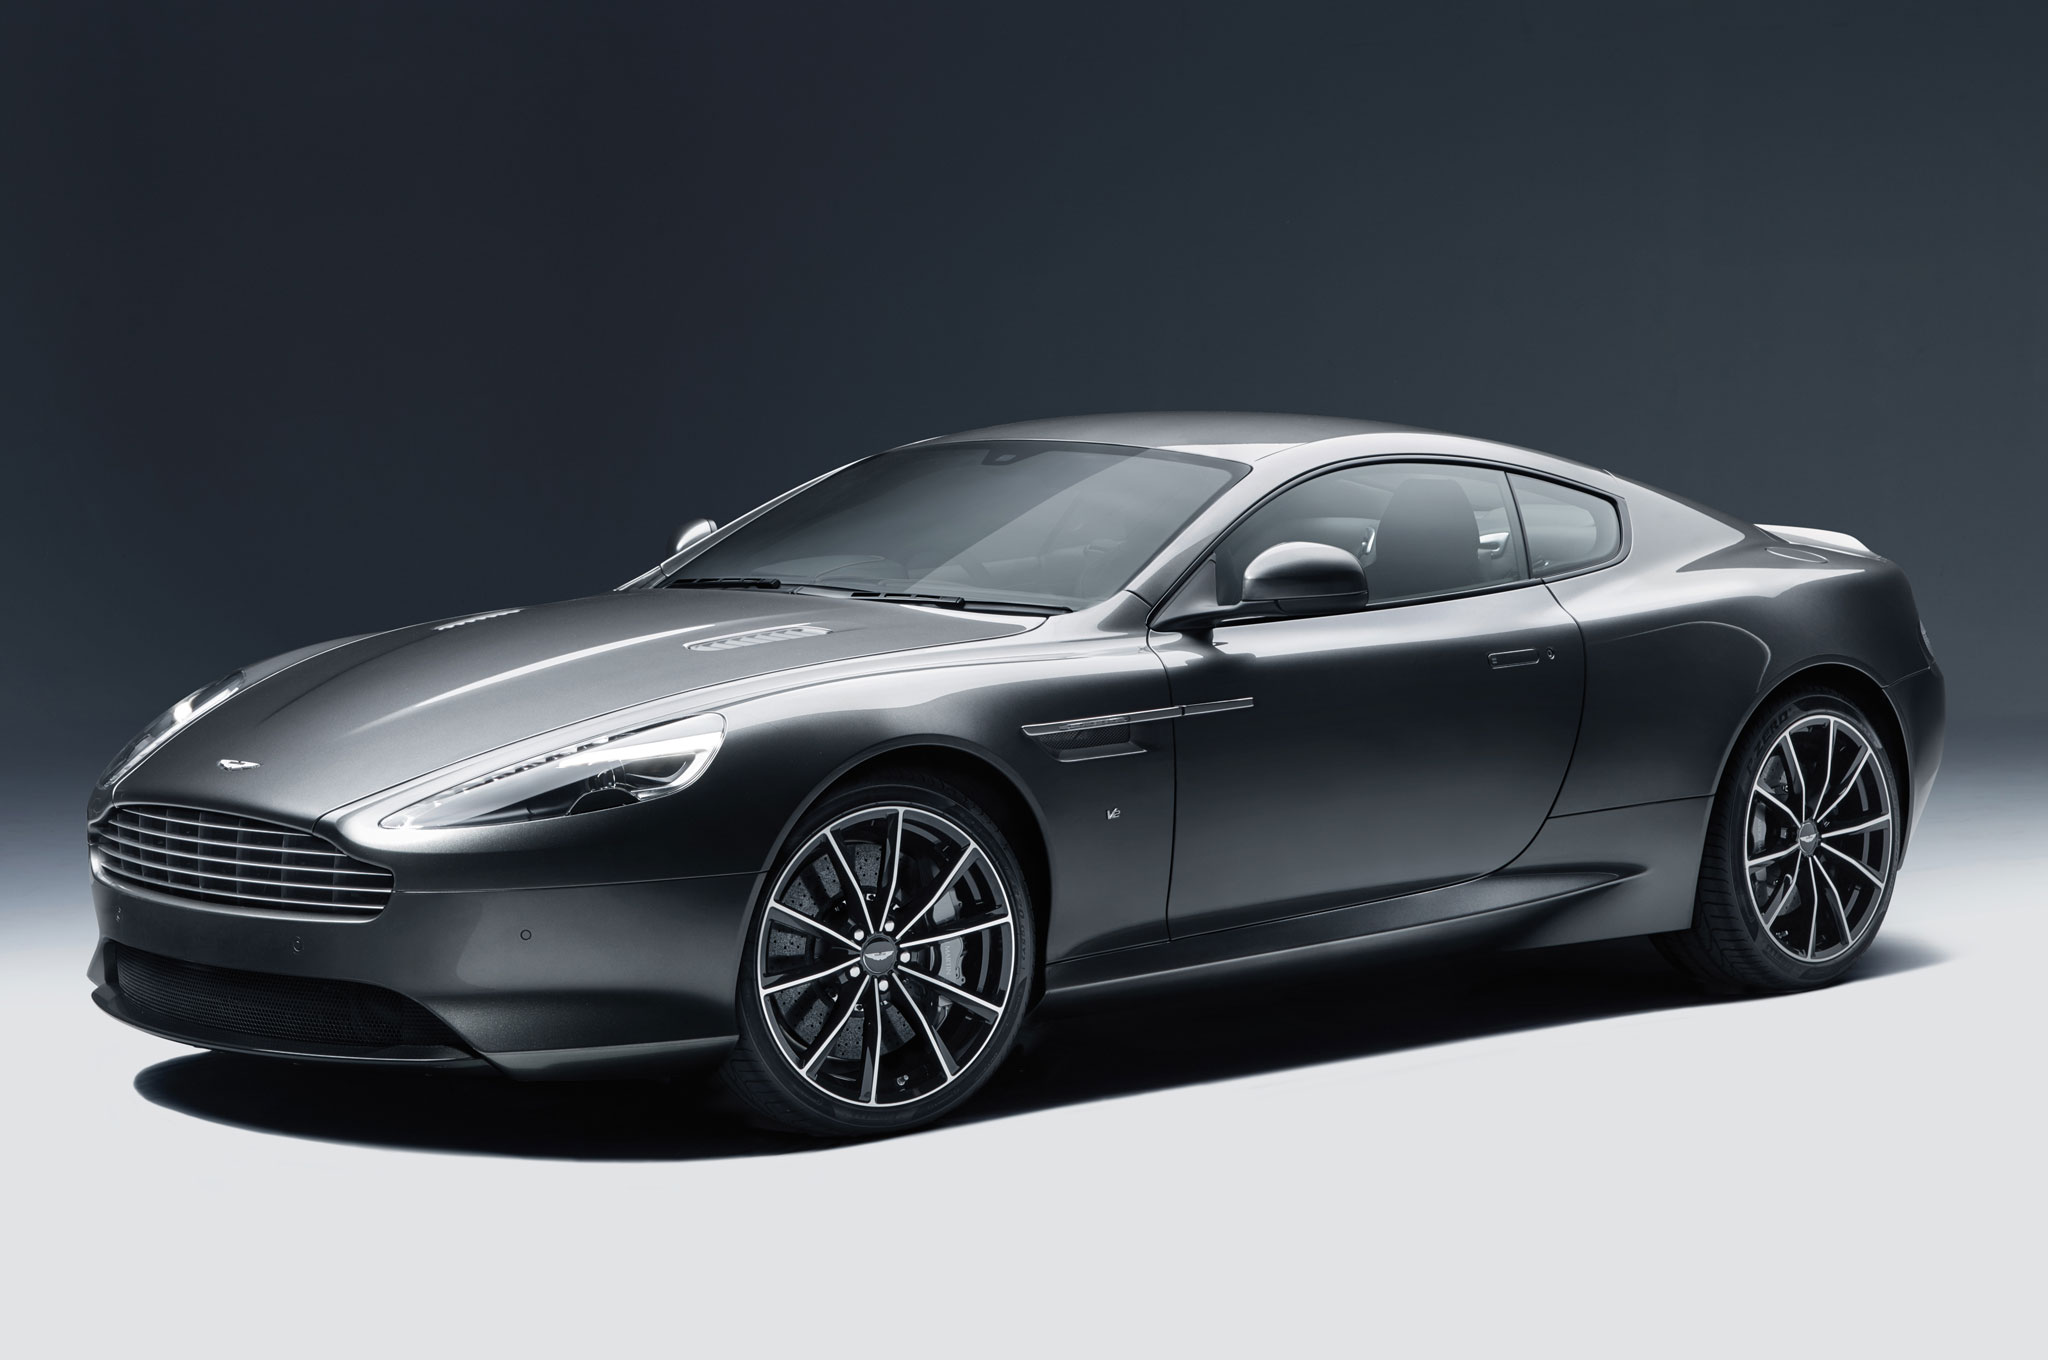 540hp 2016 Aston Martin Db9 Gt Unveiled Photo Image Gallery